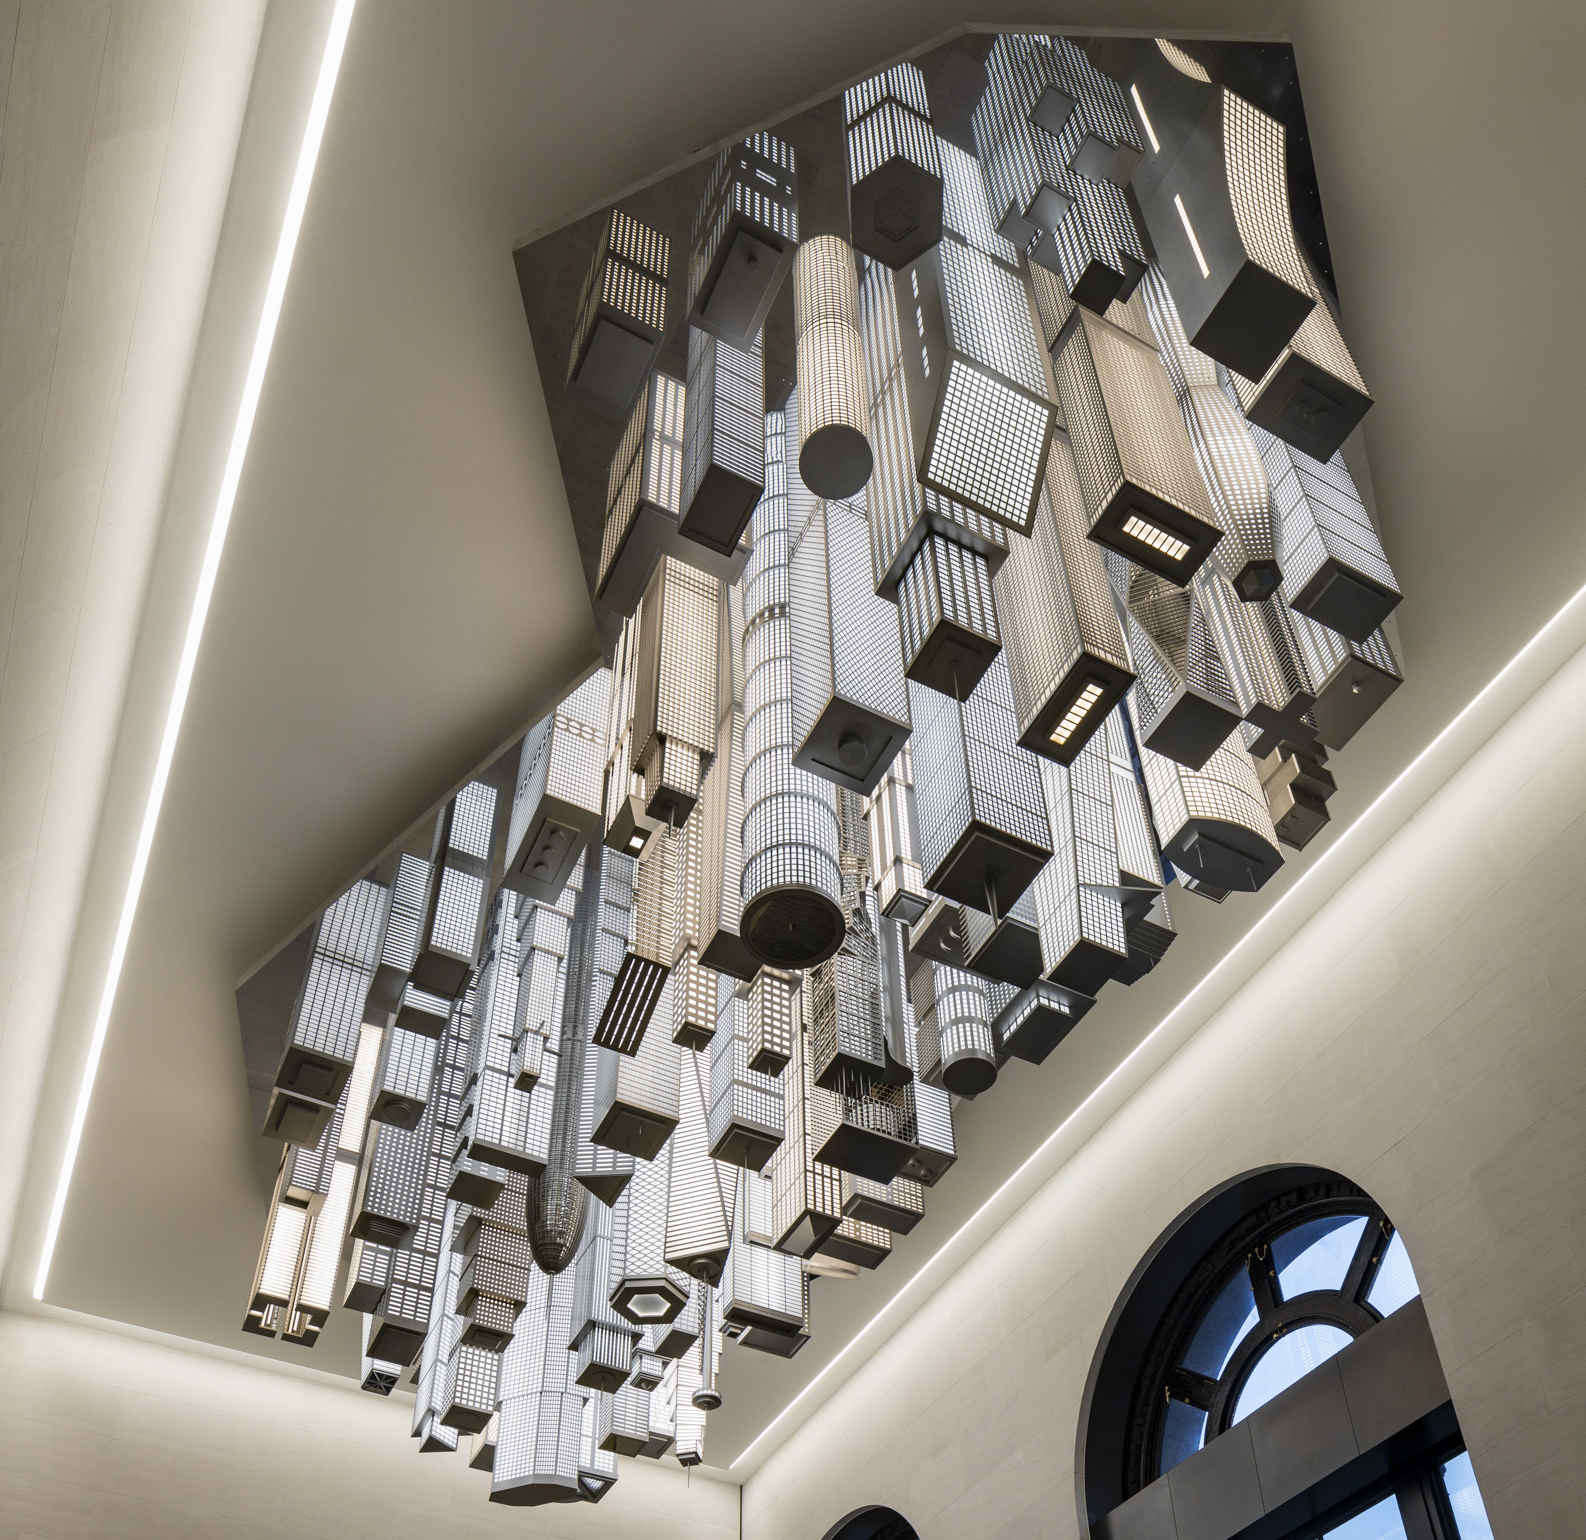 """A photograph of """"The Hive,"""" a public art work by Elmgreen & Dragnet that depicts a scaled architectural model of a global metropolis suspended from the ceiling of Moynihan Station's 31st Street Entrance Hall."""